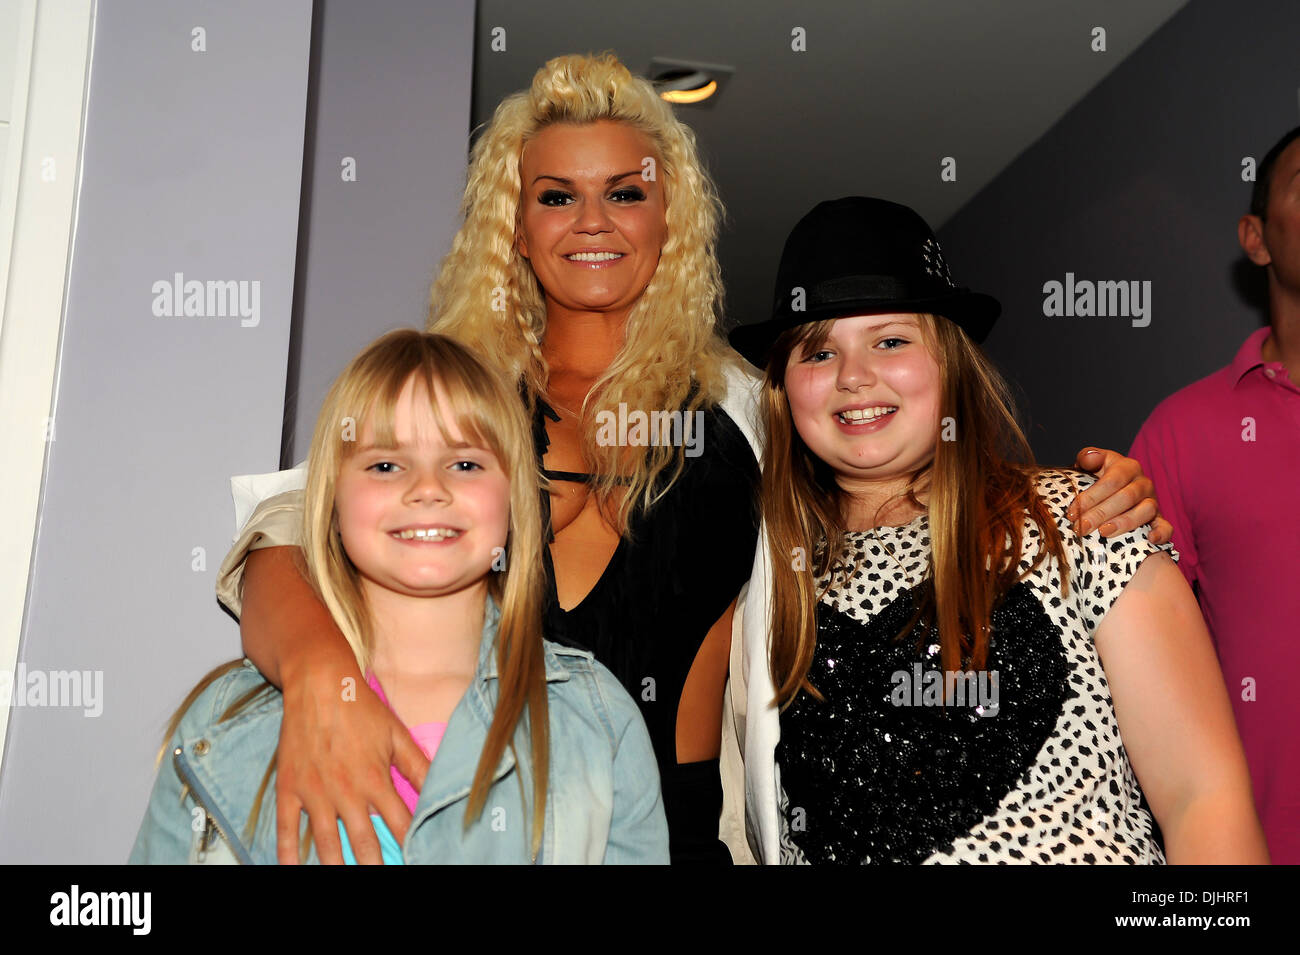 Kerry Katona And Her Daughters Molly Marie McFadden And